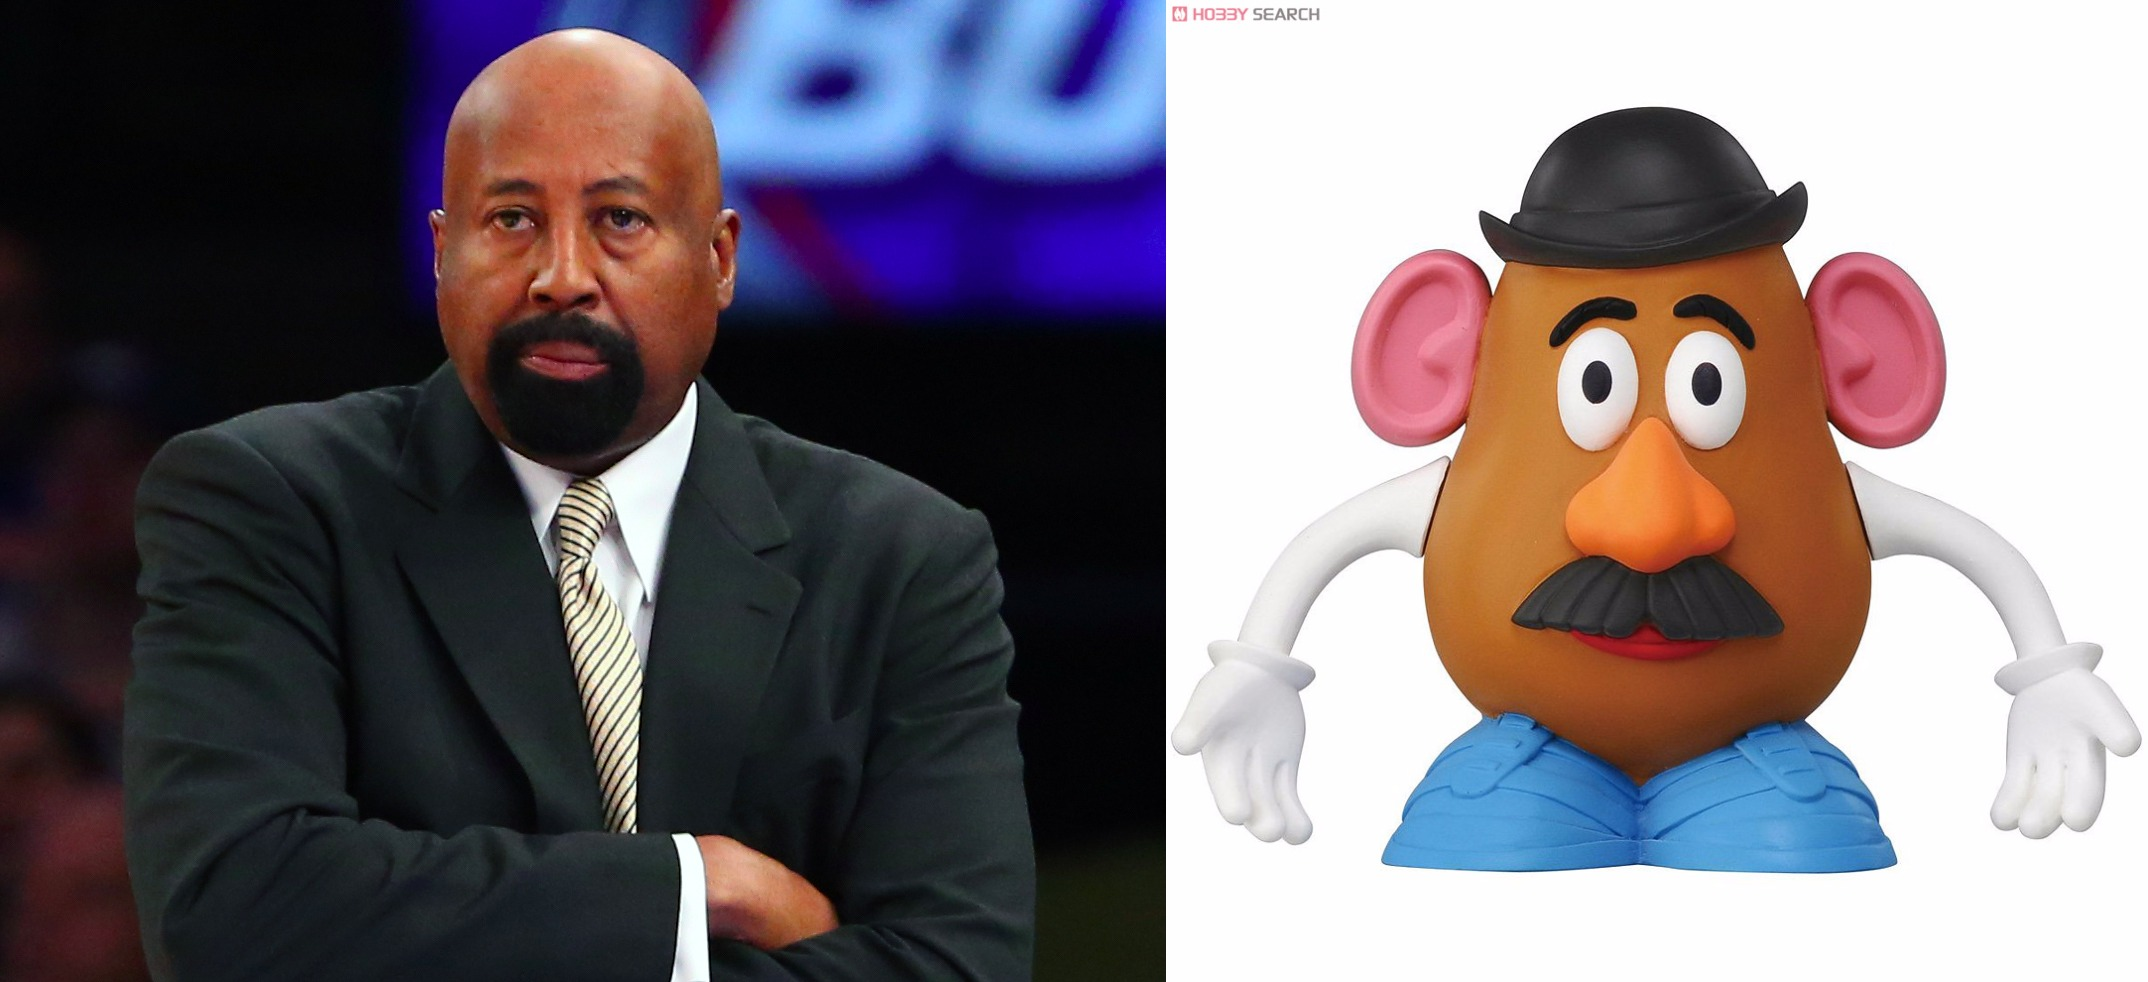 Mike Woodson now looks more like Mr Potato Head than ever before